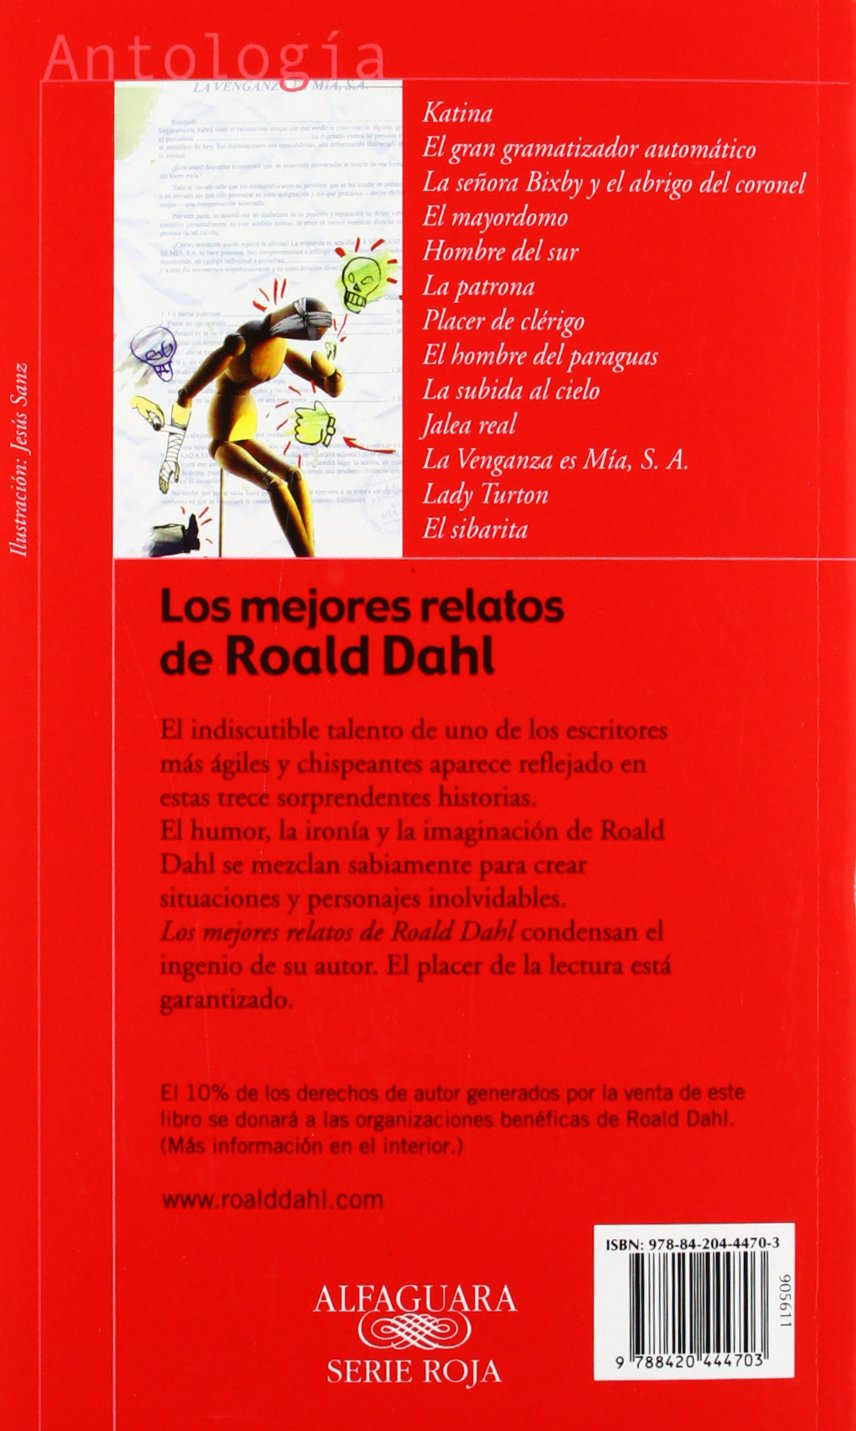 Amazon.com: Los Mejores Relatoes De Roald Dahl / The Best Stories of Roald Dahl (Spanish Edition) (9788420444703): Roald Dahl: Books